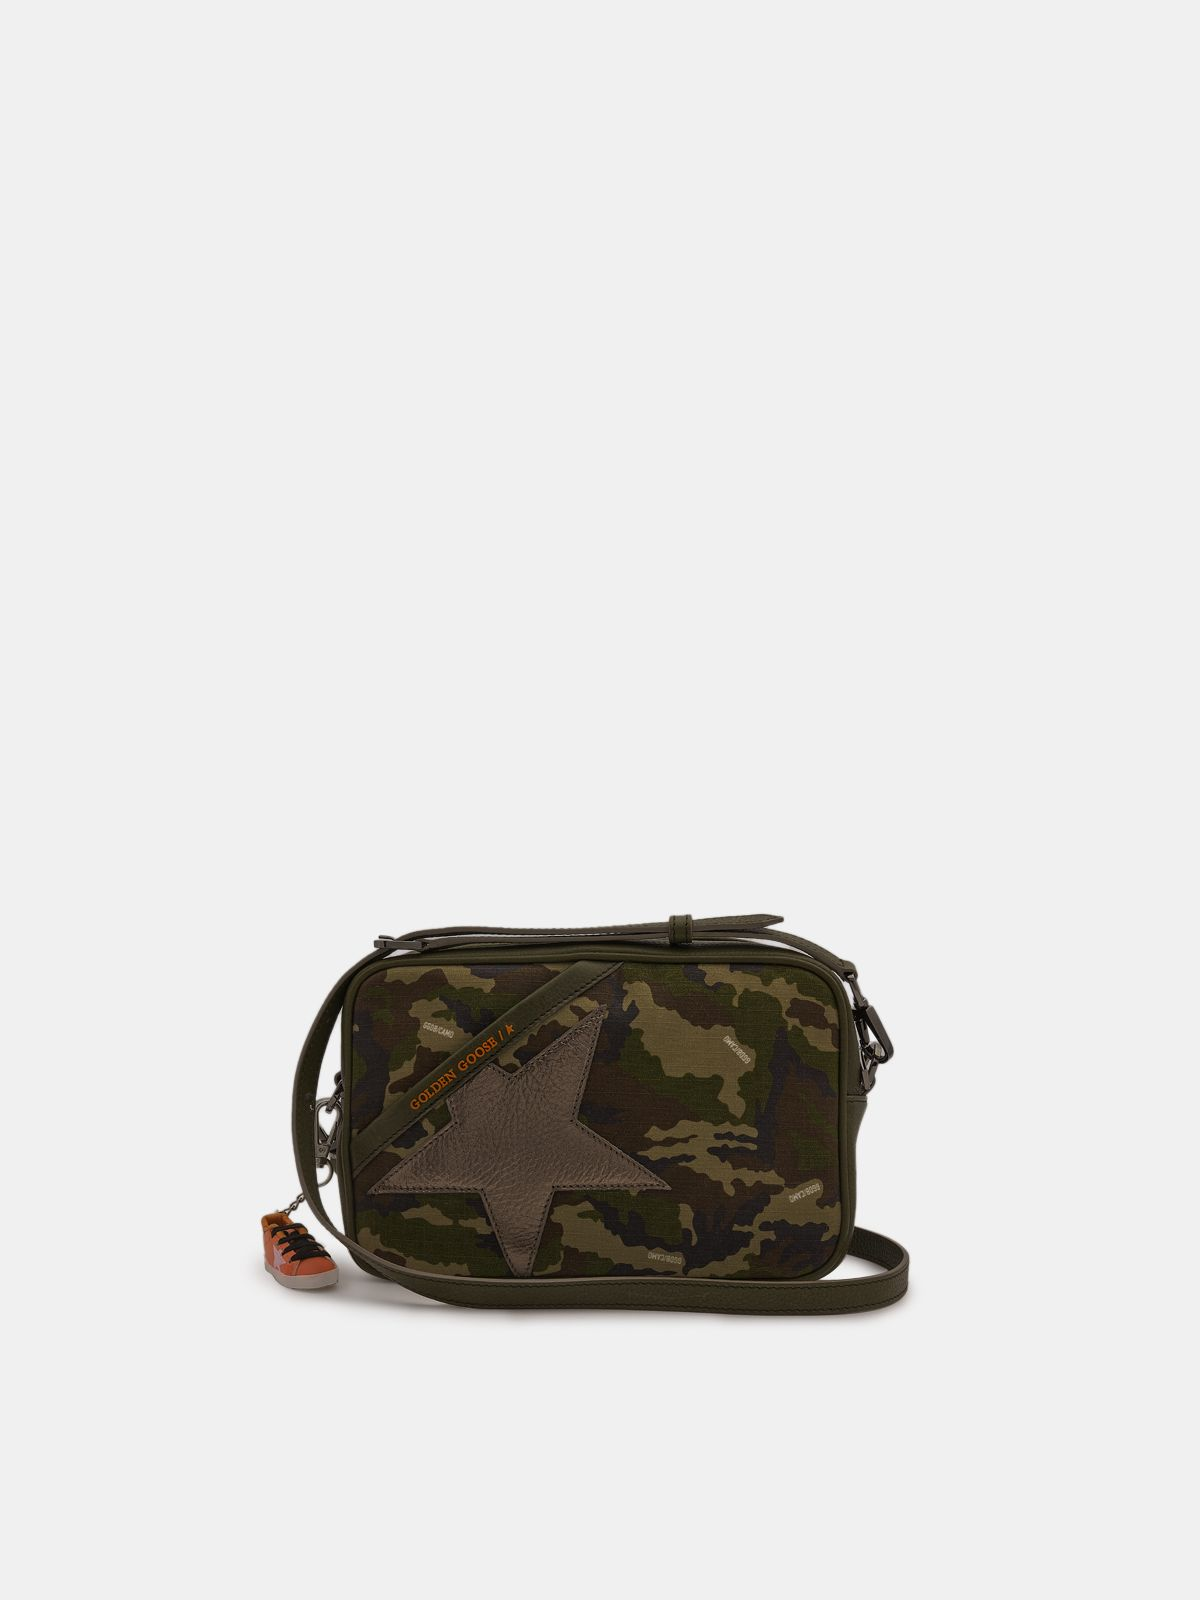 Star Bag made of camouflage canvas with laminated star